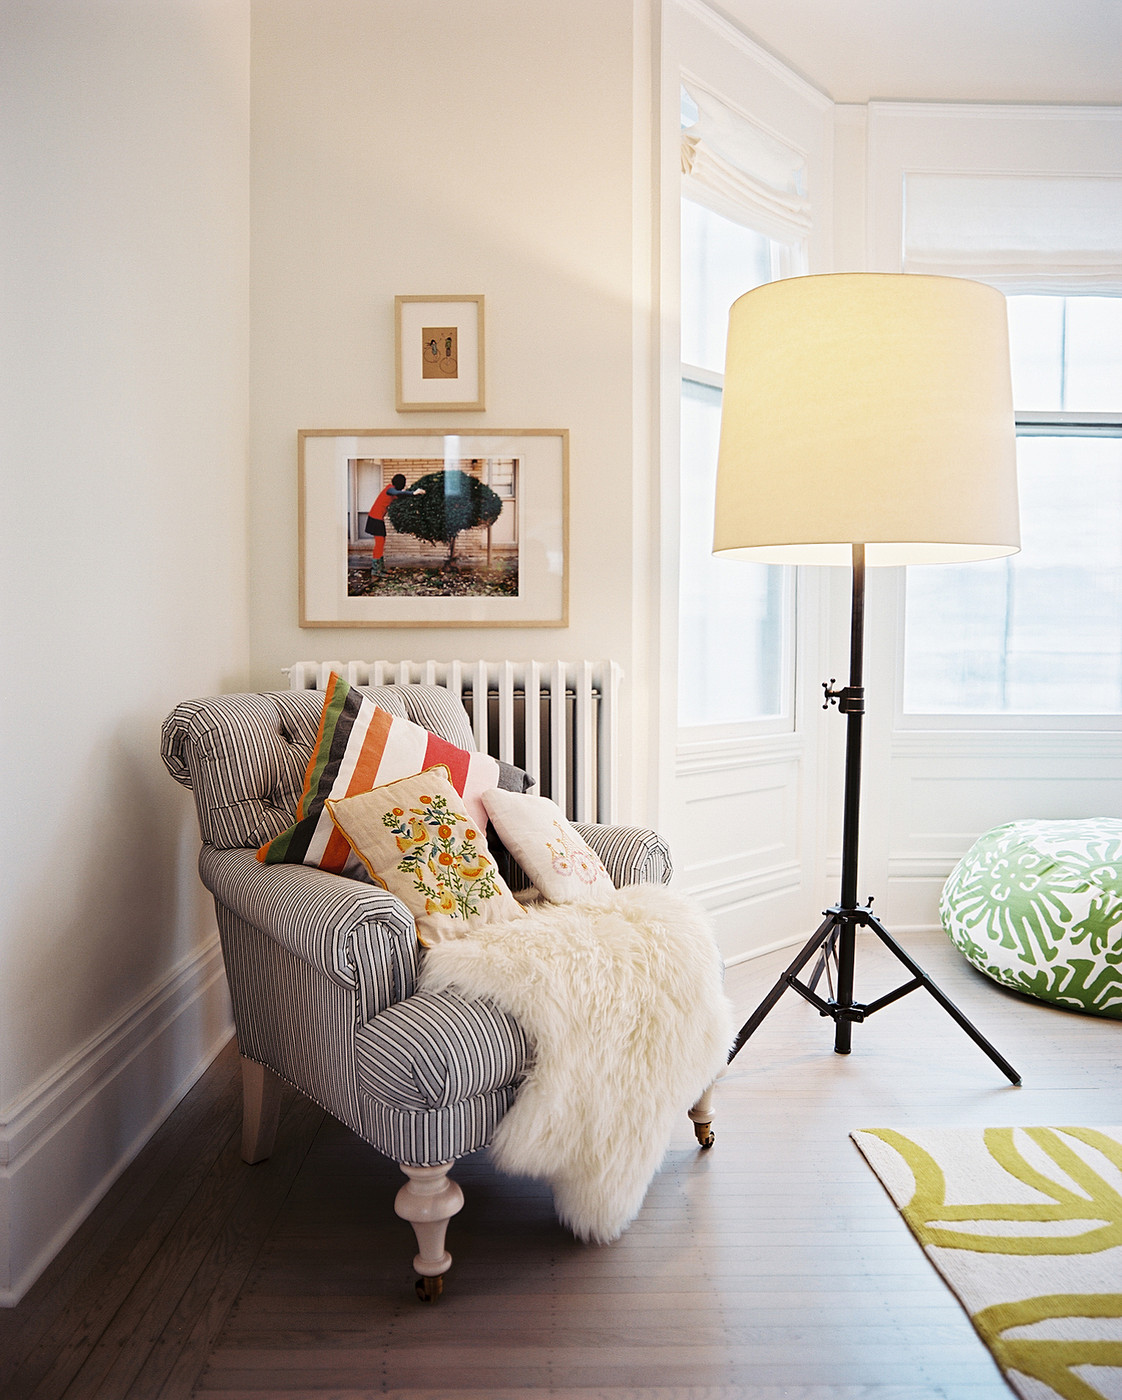 Corner Lamps For Living Room Create A Cozy Reading Nook Me Moments 2014 Lonny